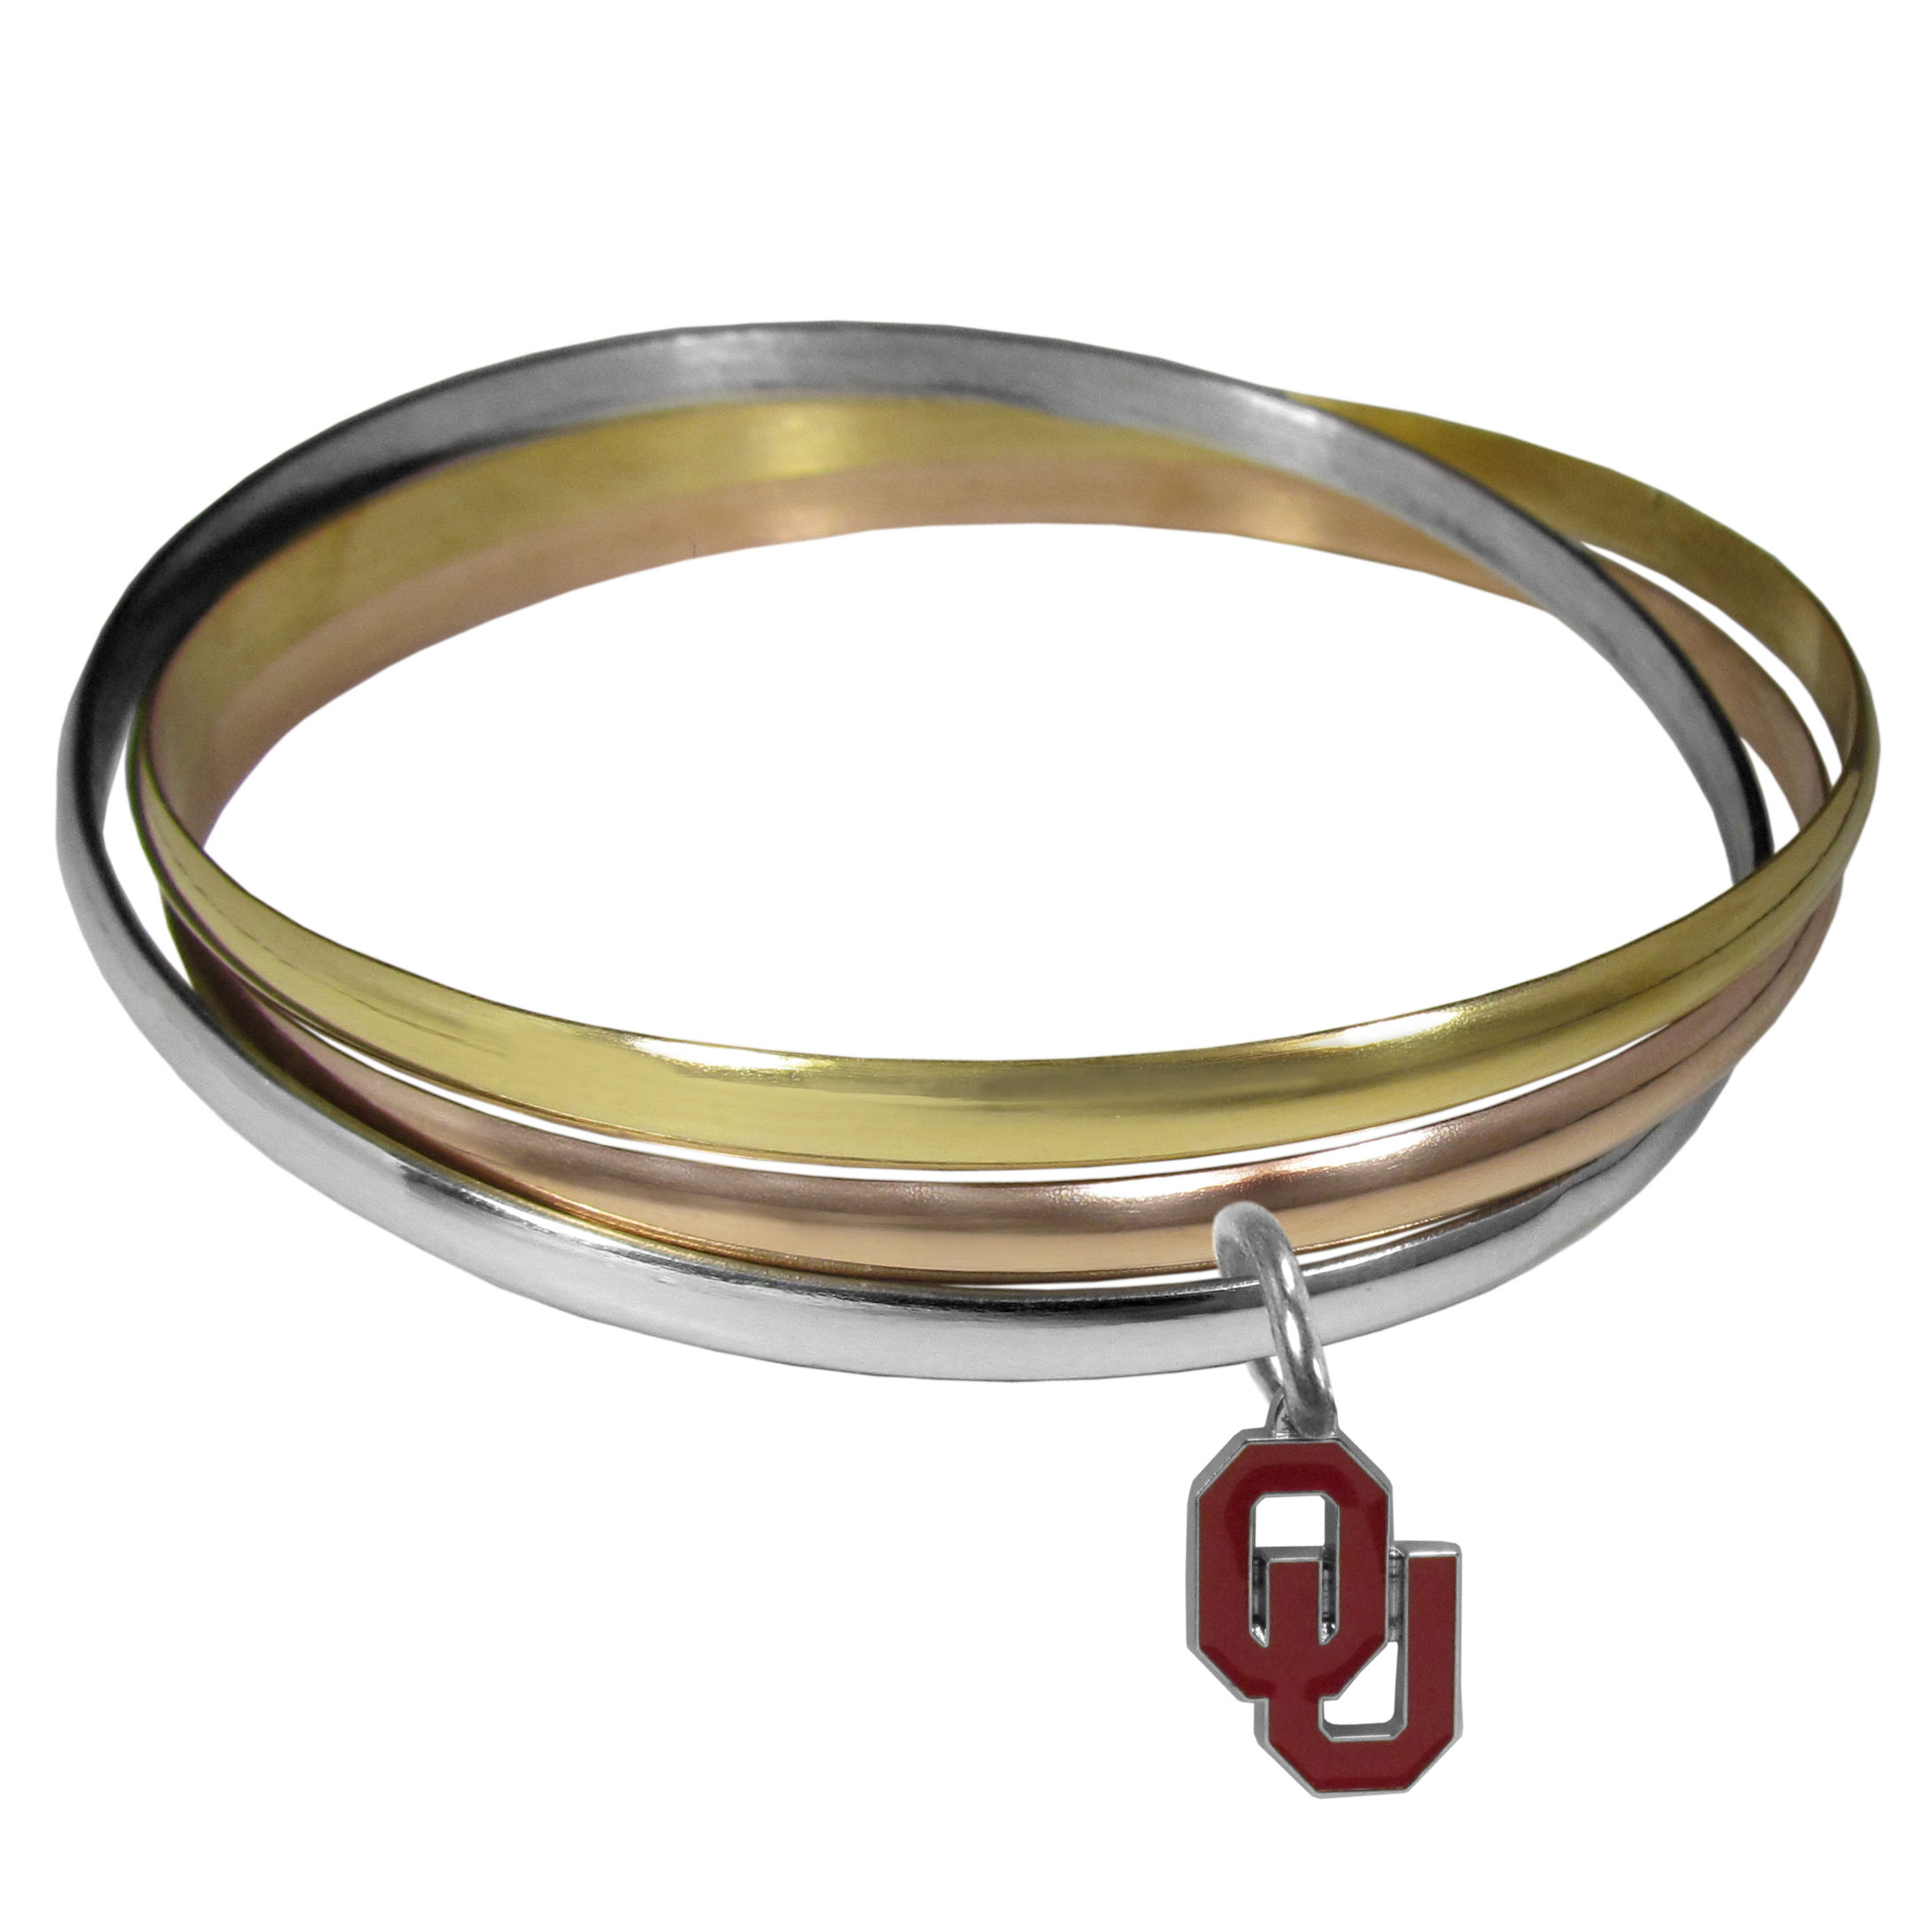 Oklahoma Sooners Tri-color Bangle Bracelet - These beautiful bangles come in a interlocking style and feature a fully cast Oklahoma Sooners charm with enameled team colors. The bracelet has a silver toned bangle, gold tone bangle and brass toned bangle.